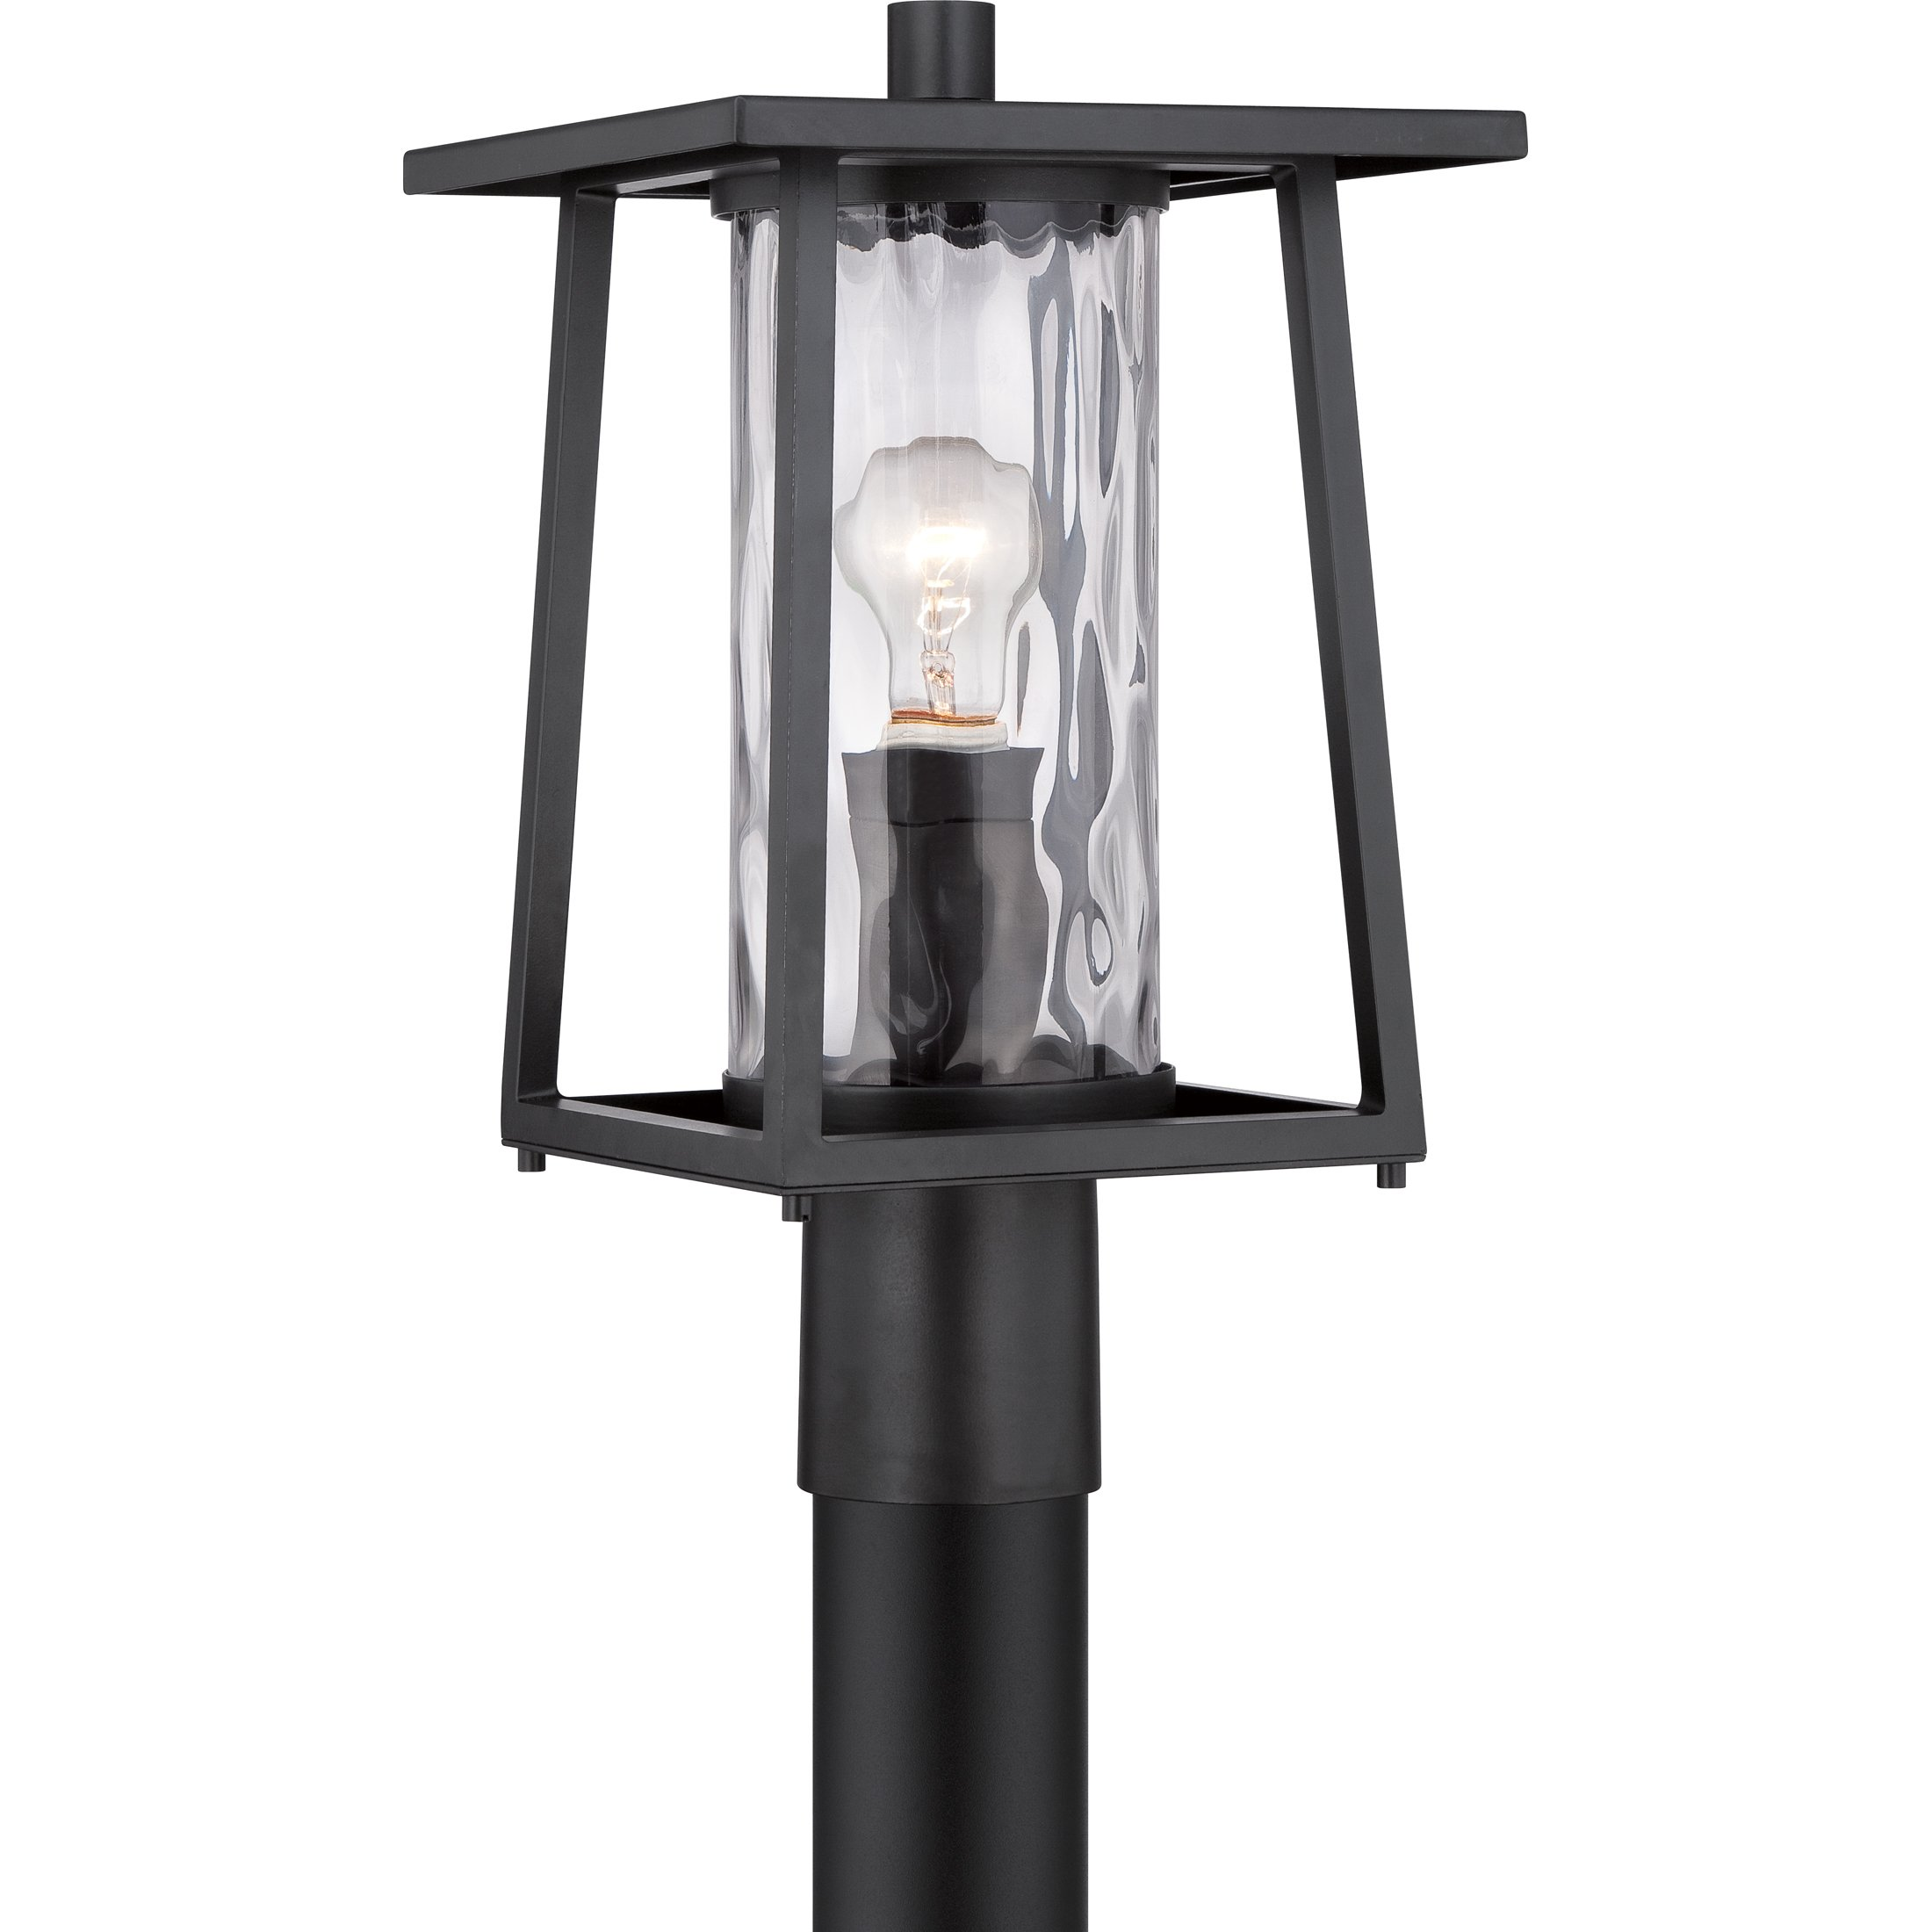 Quoizel LDG9009K Lodge with Mystic Black Finish and  Large Post Lantern,  Black